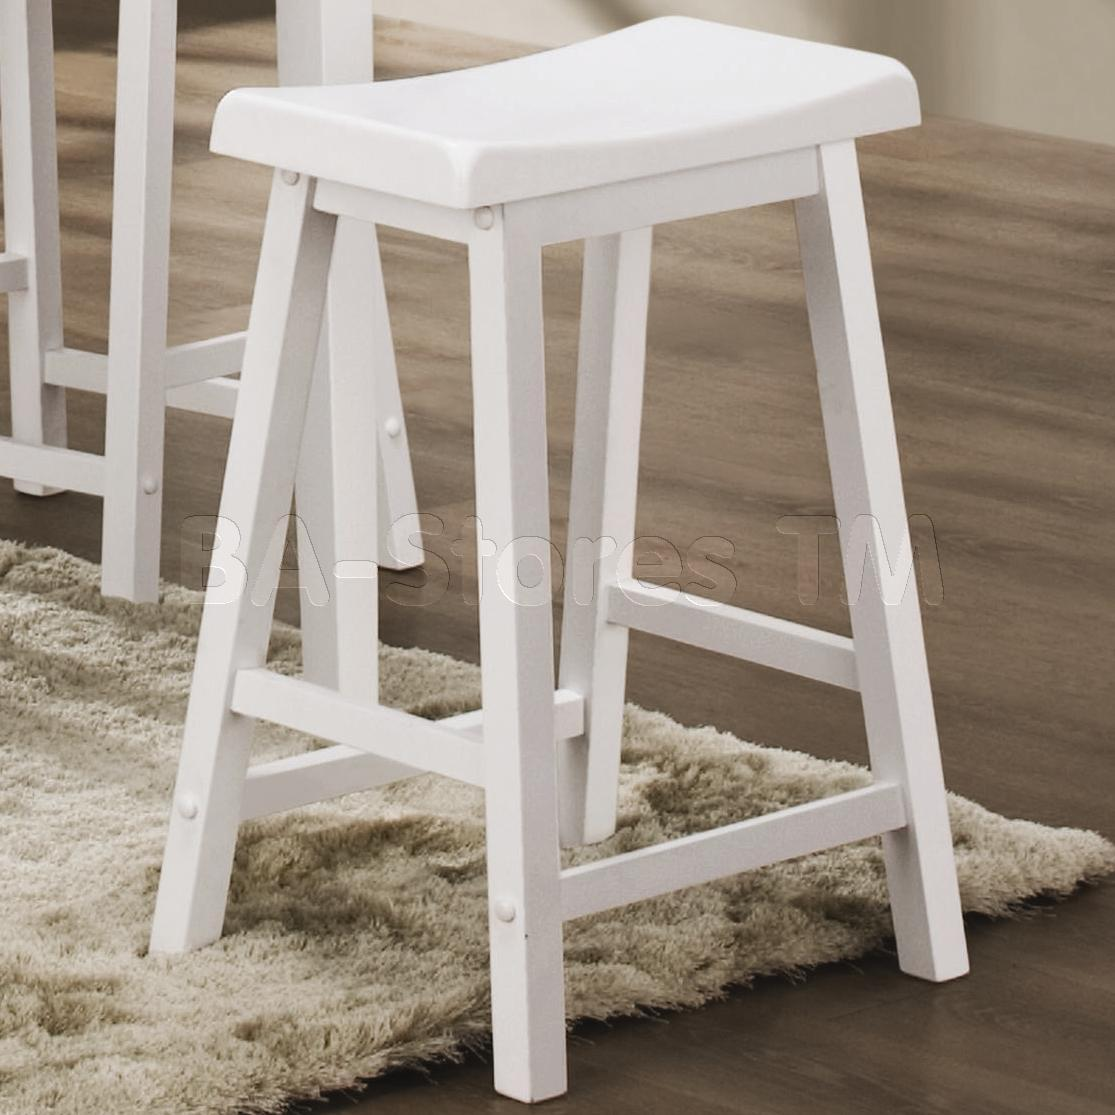 wooden bar stool chairs leigh upholstered slipper chair white wood stools homesfeed